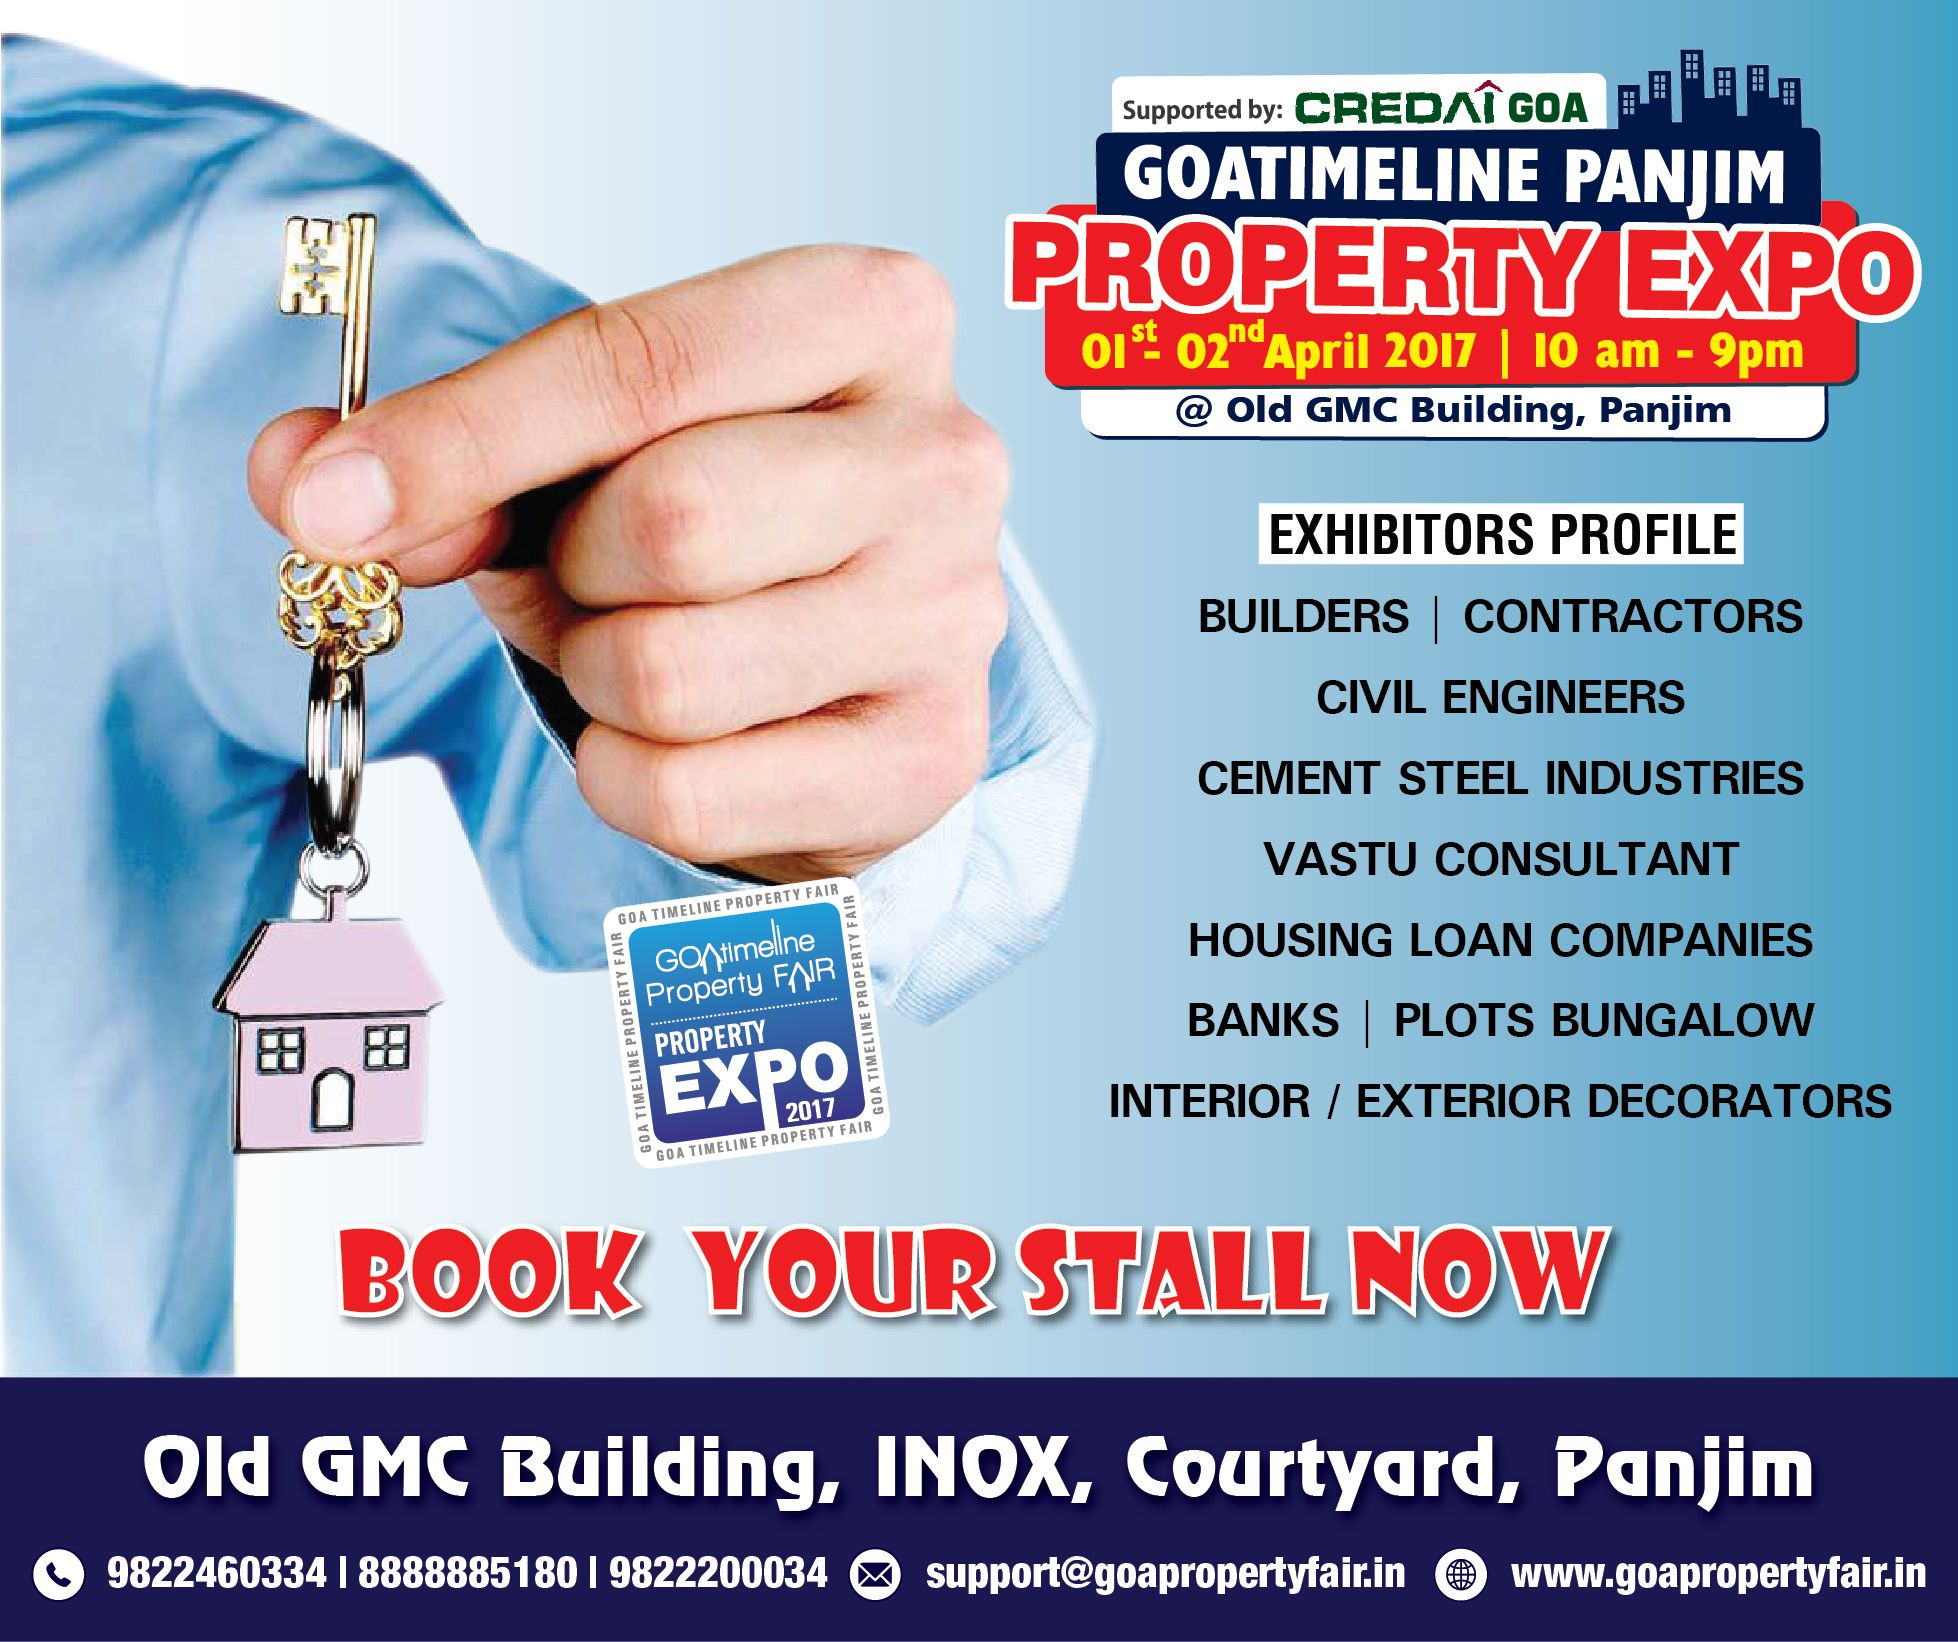 Call To Book Your Stall The Goa Timeline Property Expo In Panjim Is On The 1st And 2nd April 2017 Stall Booking Builder Contractor Supportive 2017 Interiors